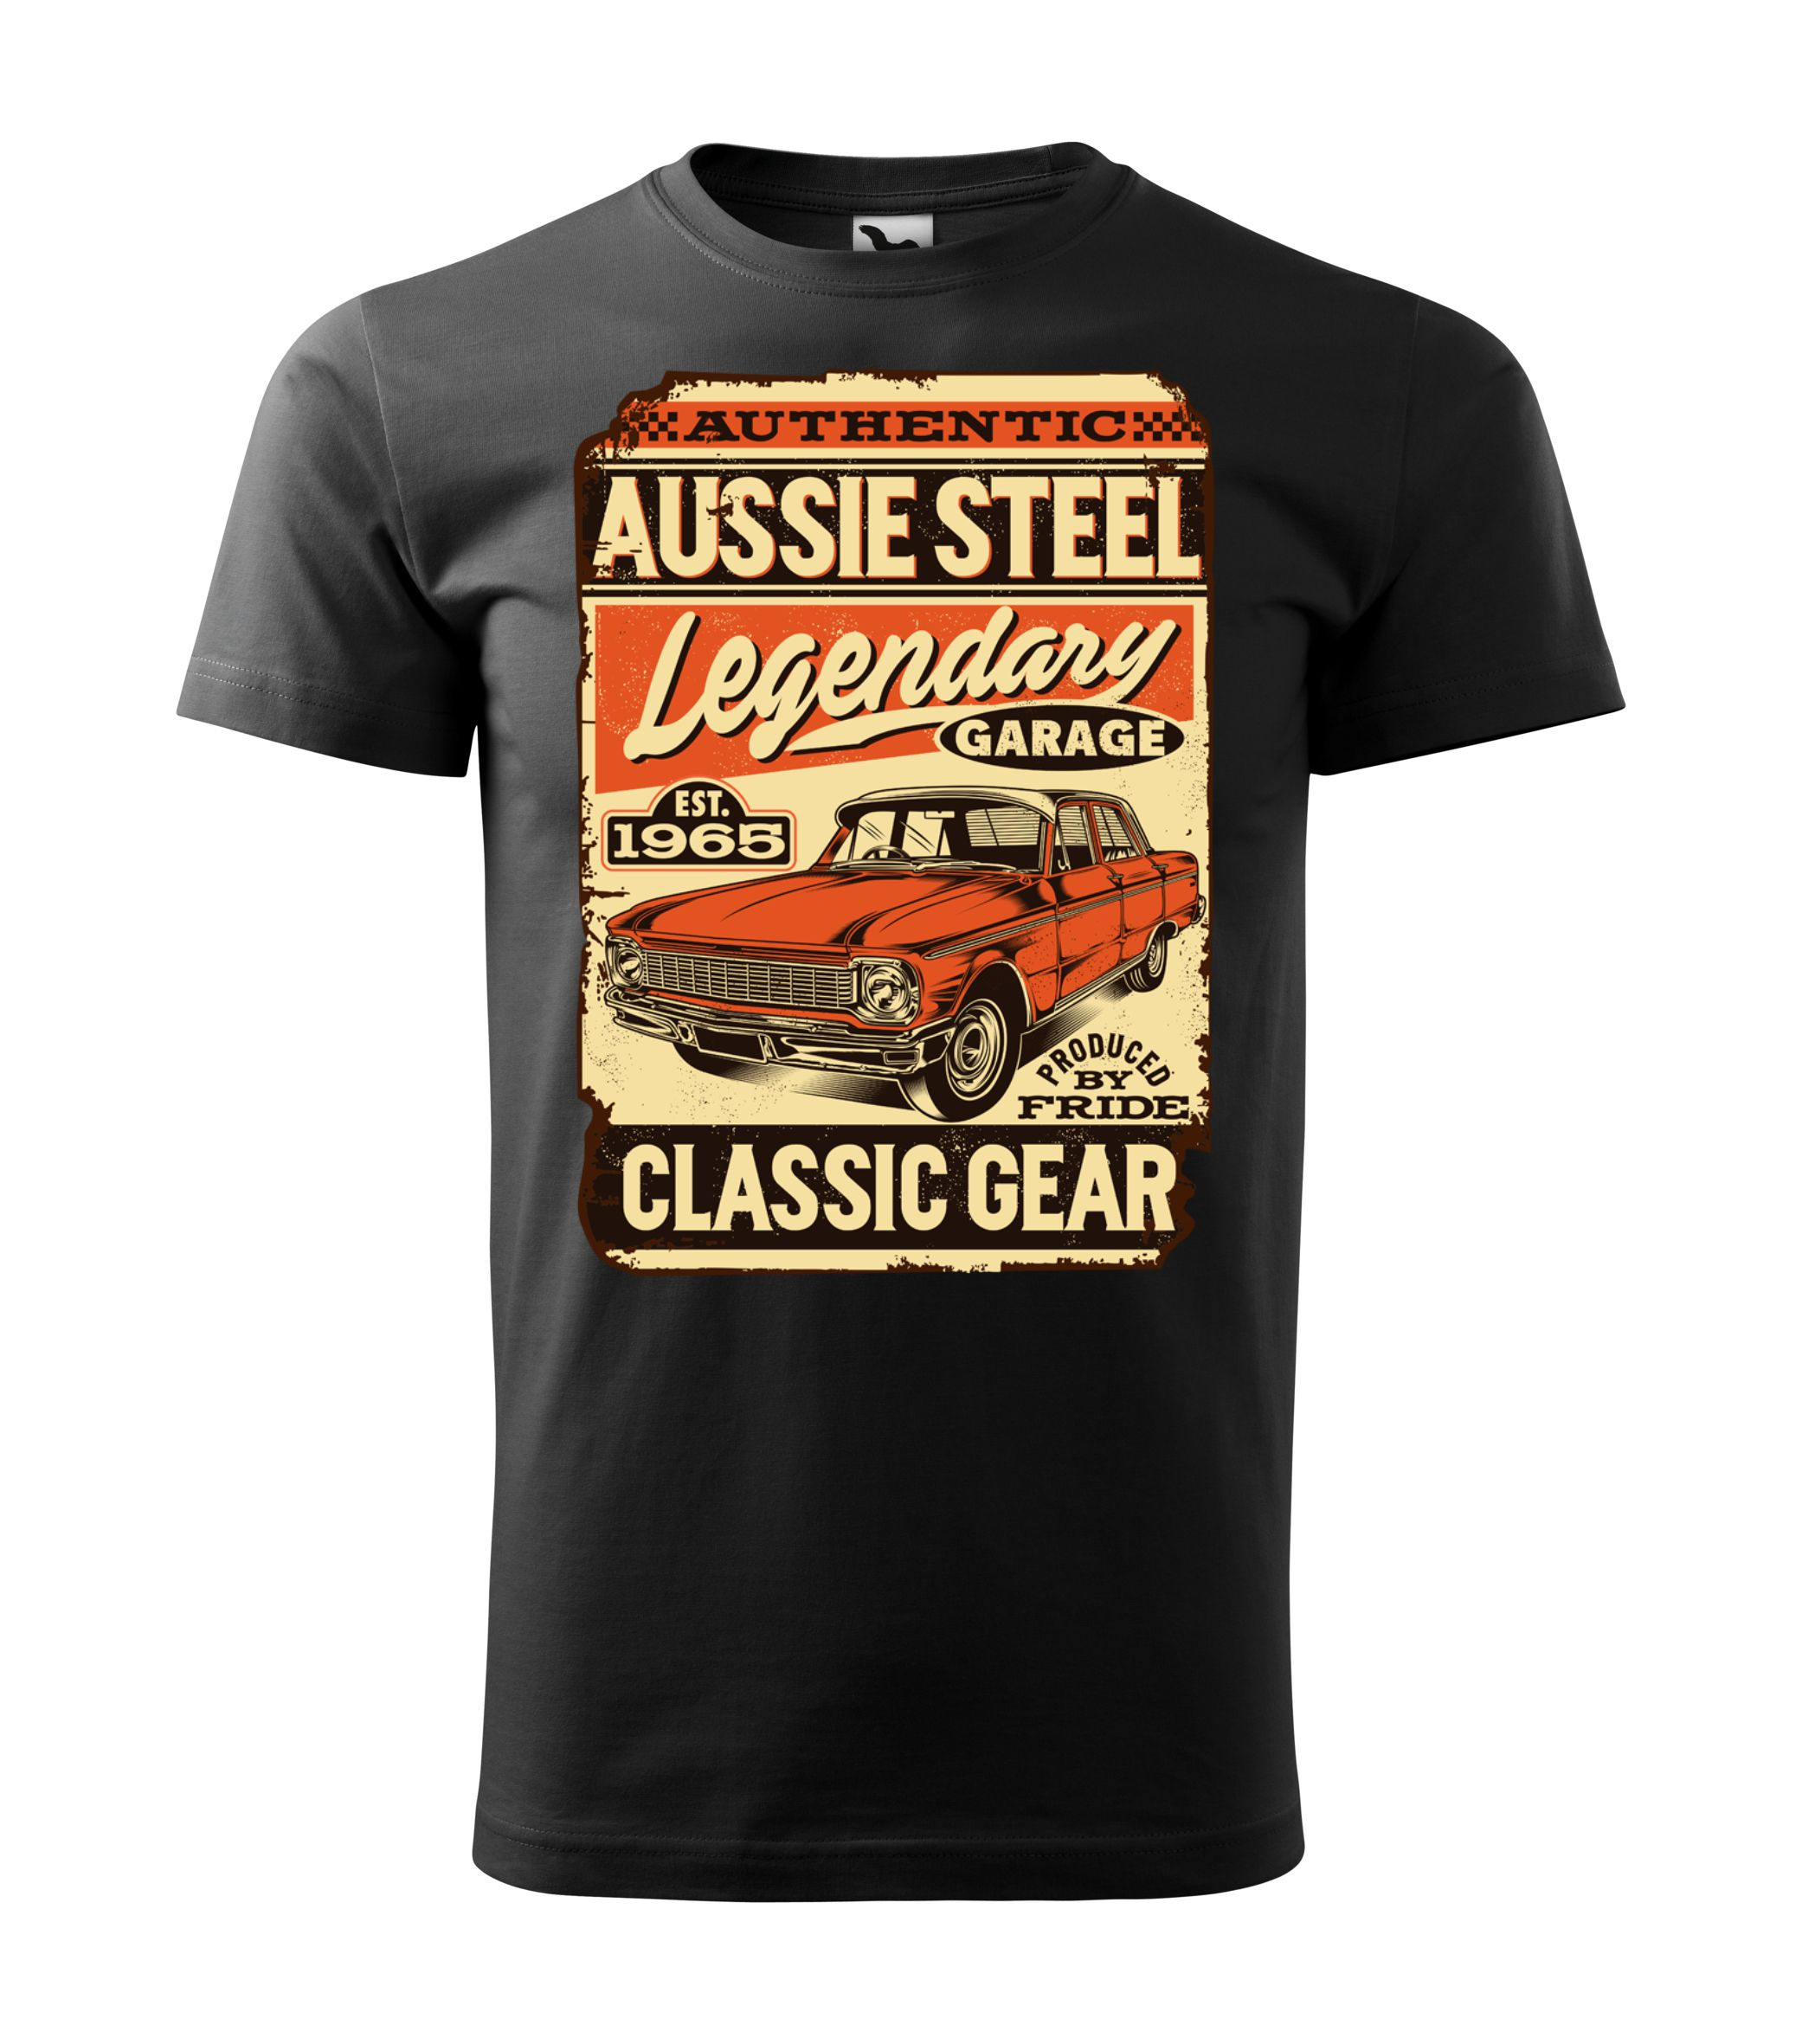 AUSSIE STEEL Legendary Garage